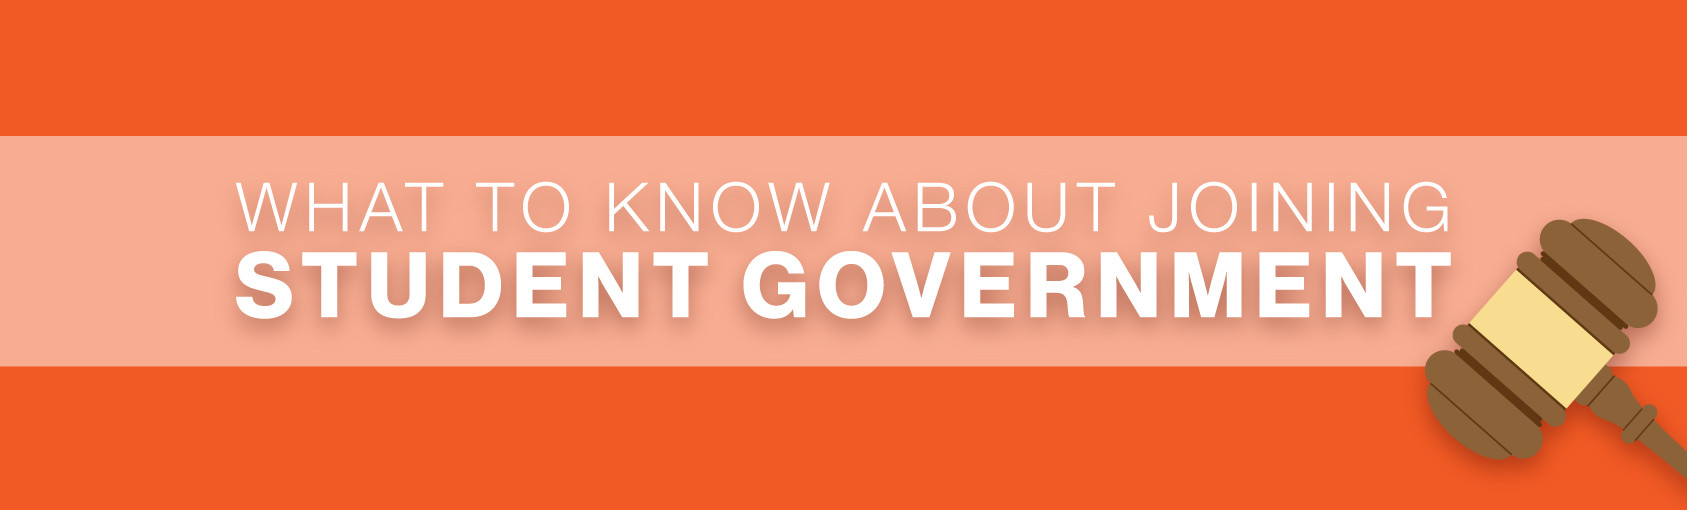 What to Know About Joining Student Government banner